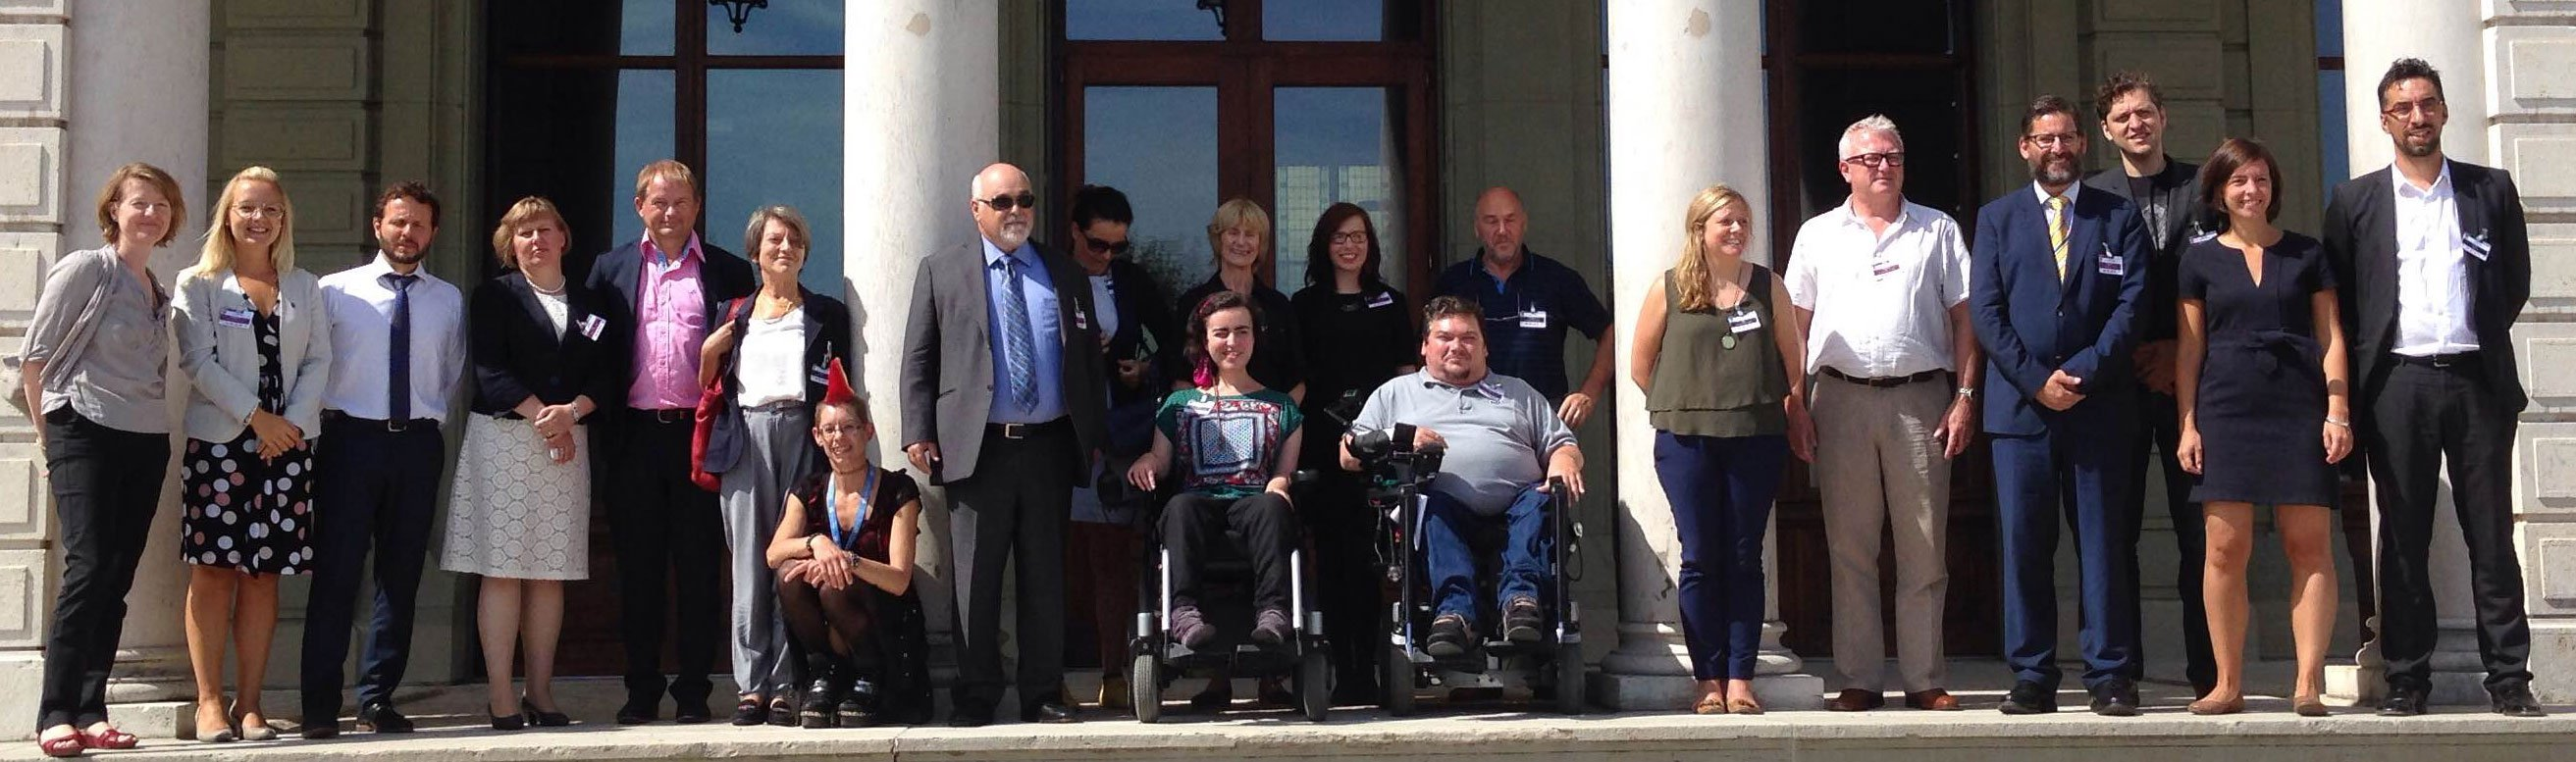 The Delegation of European Disability Movement